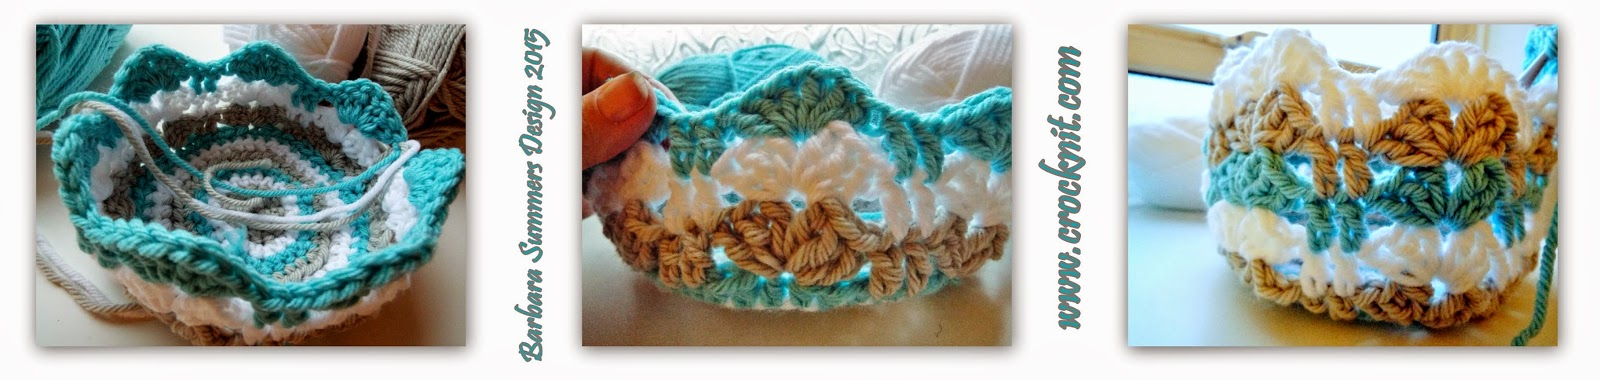 crochet bag free pattern, round bag, drawstring bag, fans, posts, how to crochet